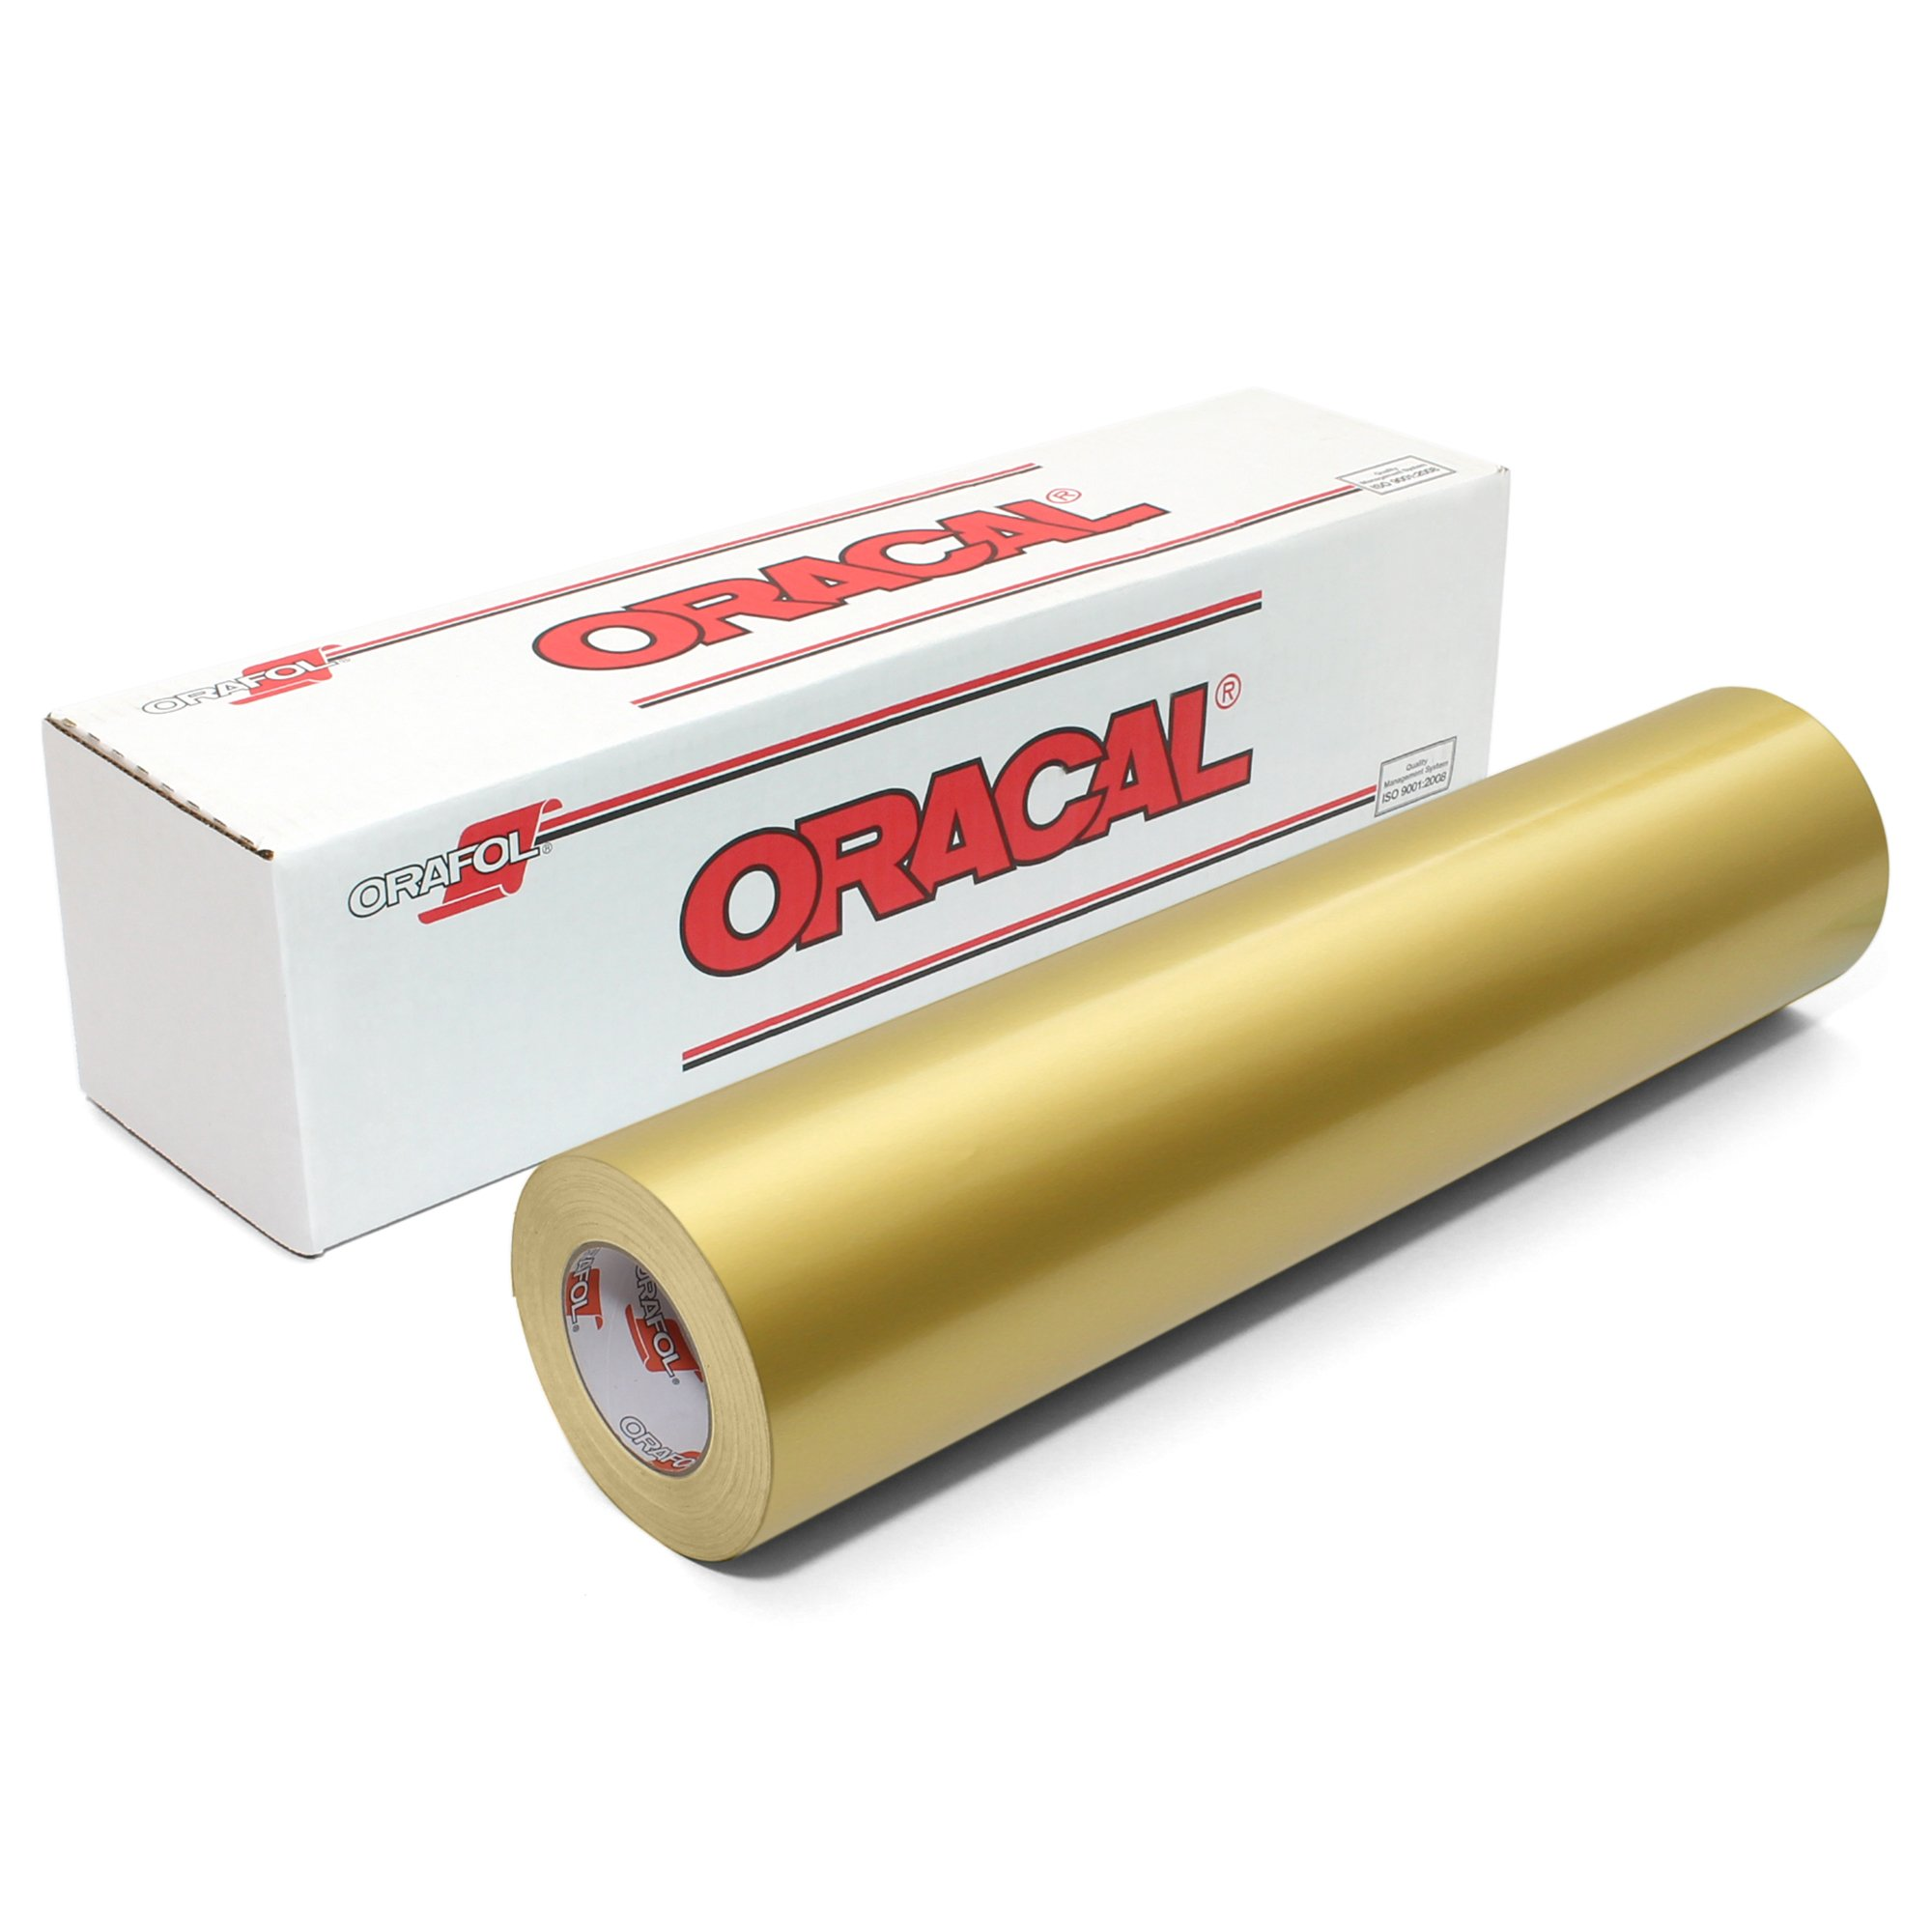 Oracal 651 Glossy Vinyl Roll 2 Sizes Available - Metallic Gold